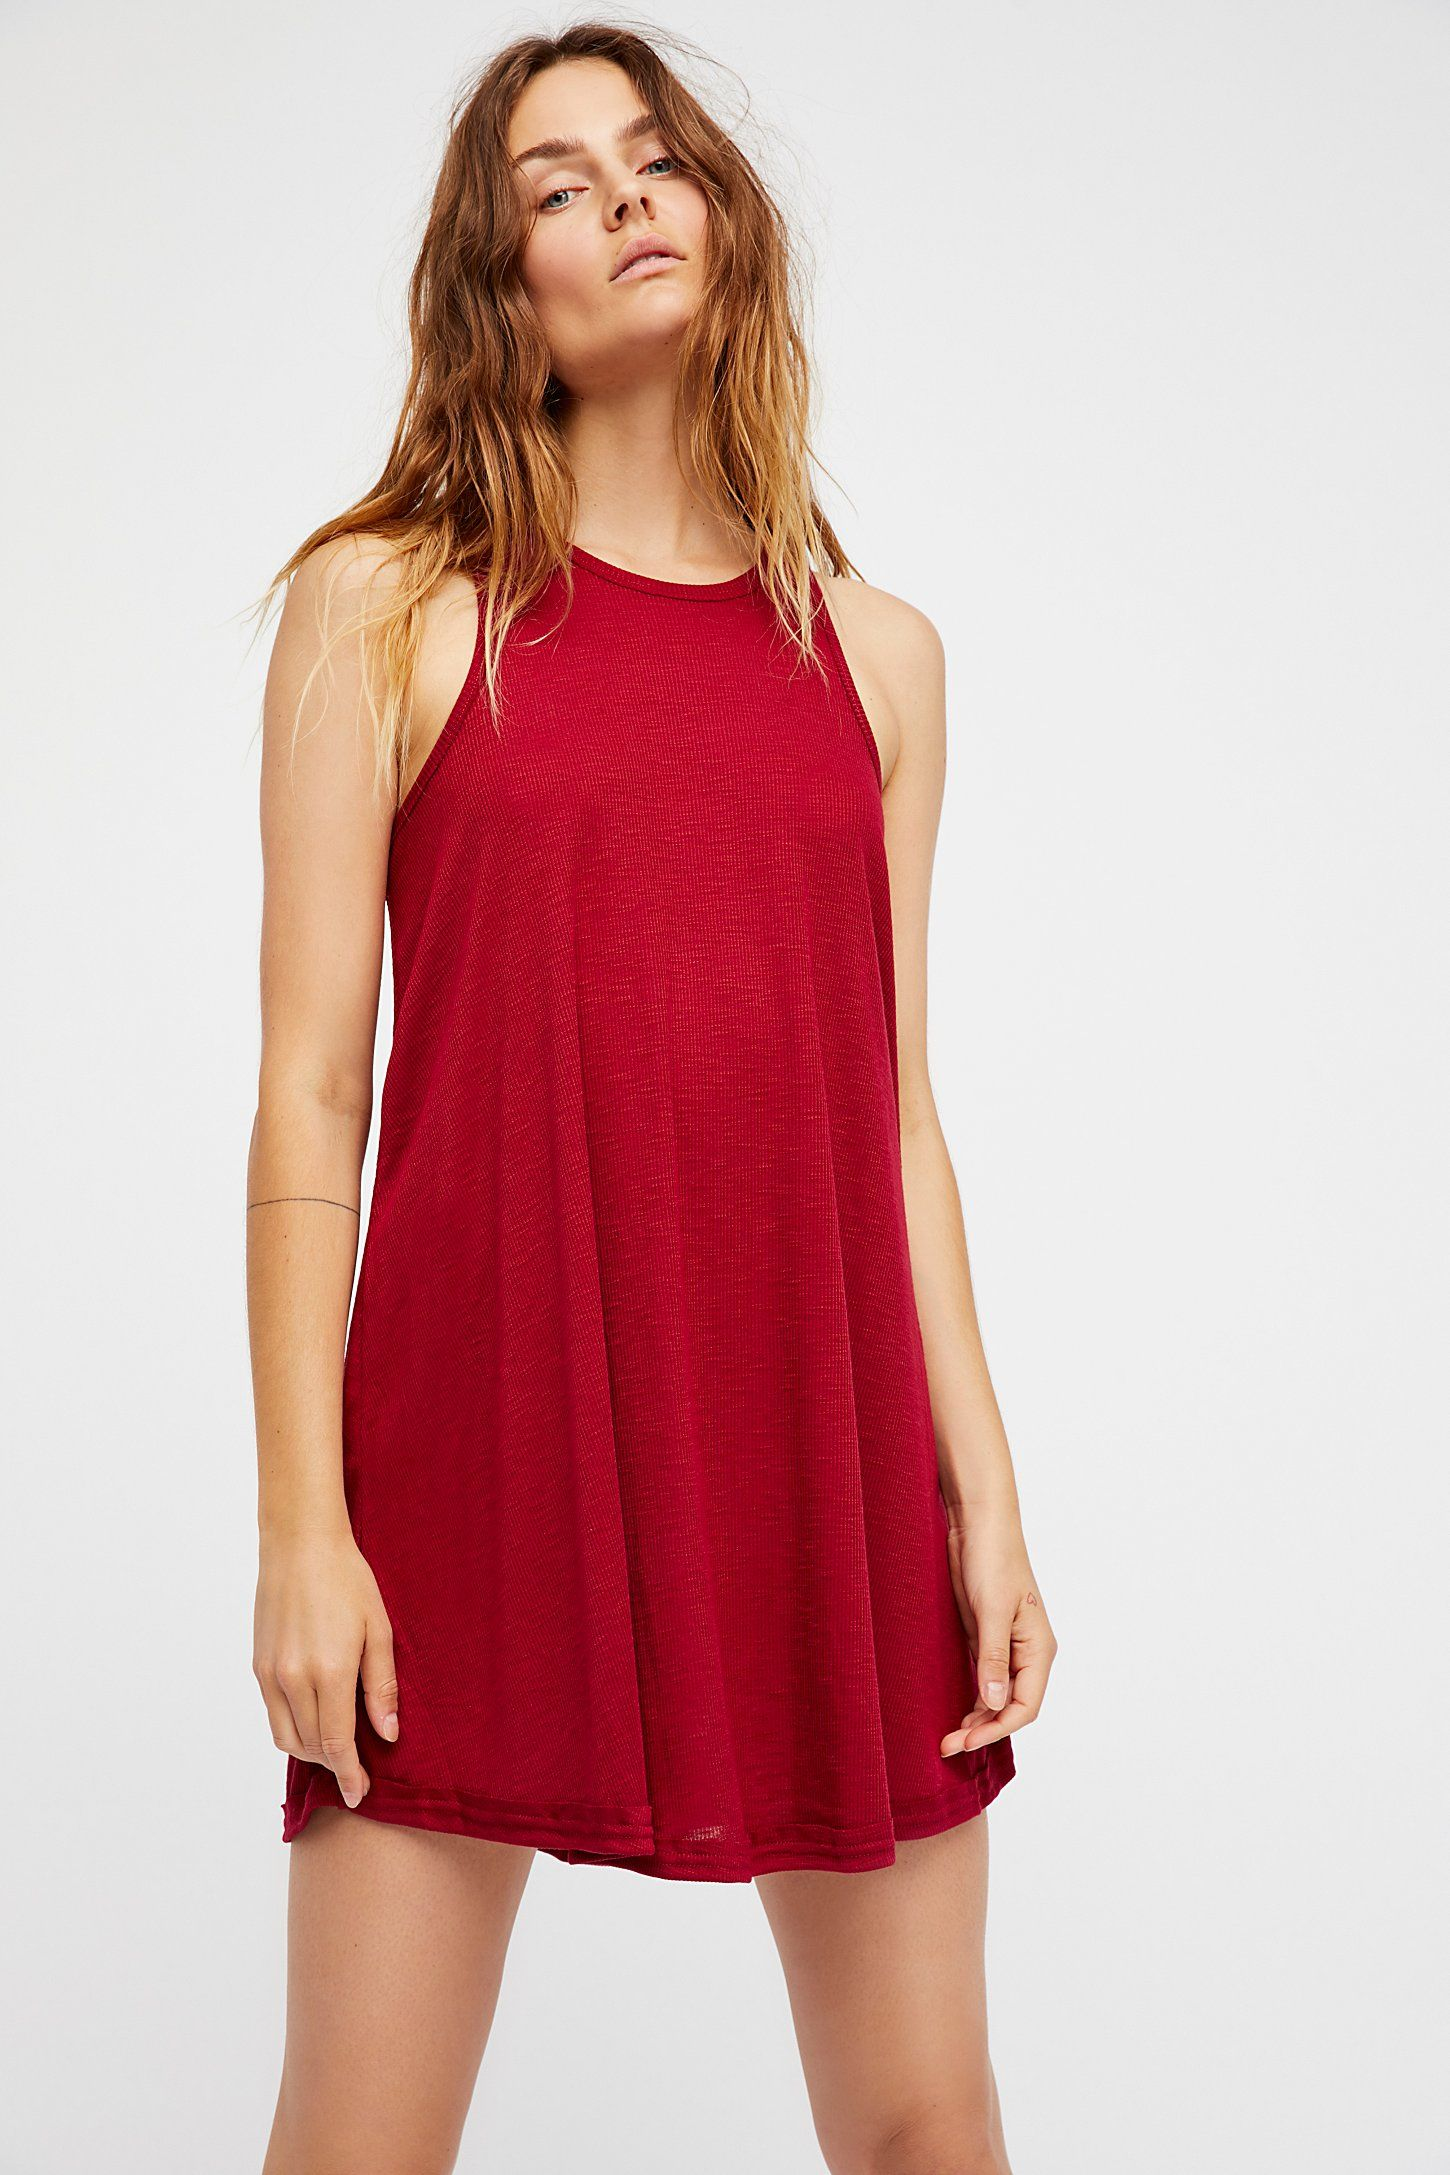 bd9330fcc0 Shop our LA Nite Mini Dress at Free People.com. Share style pics with FP  Me